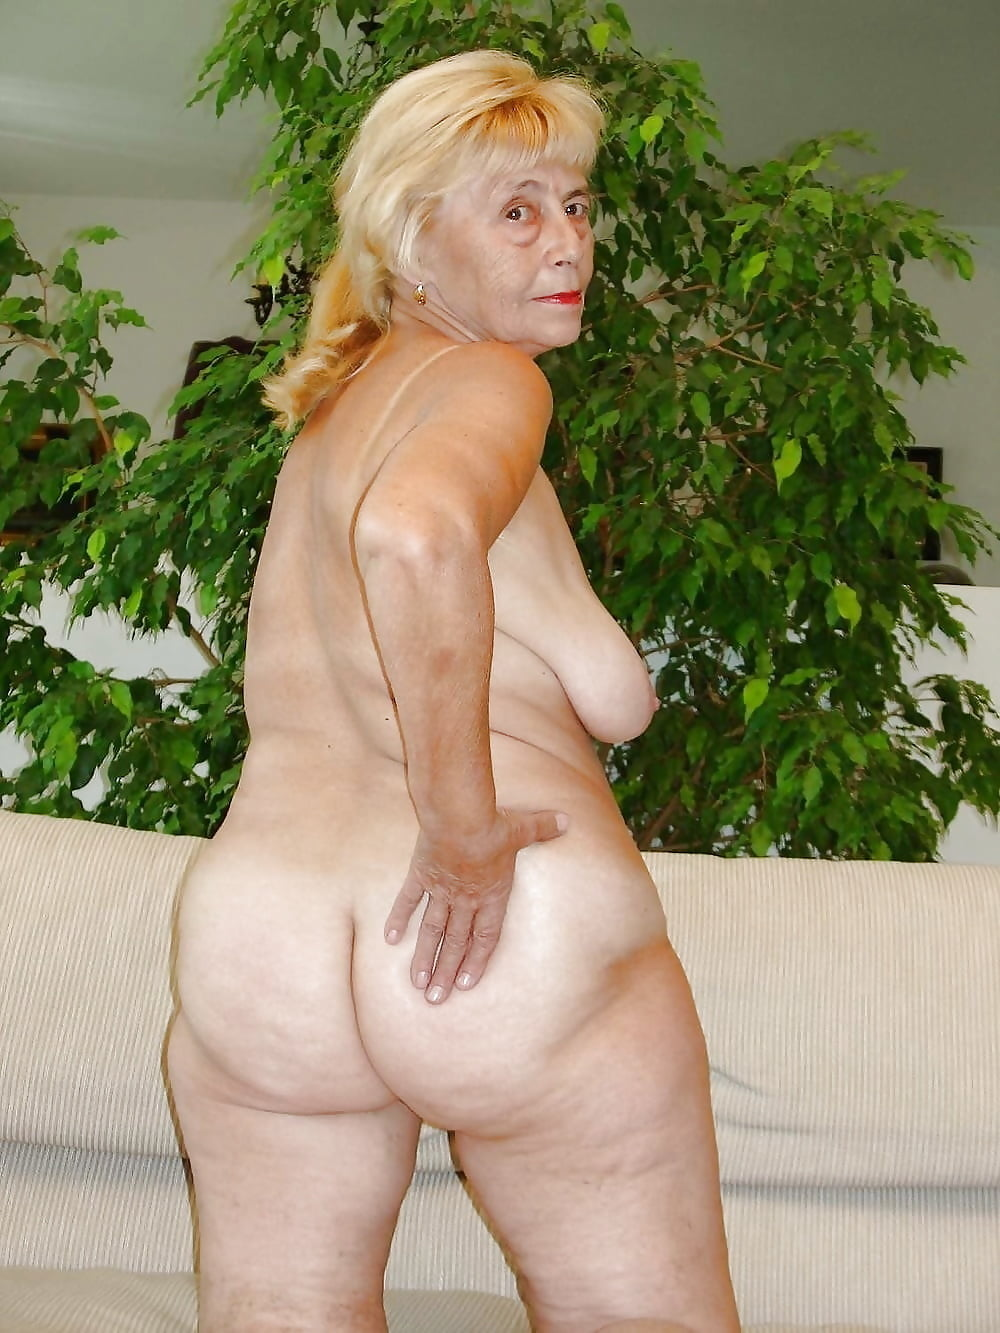 pussy-photos-of-nude-grannies-ass